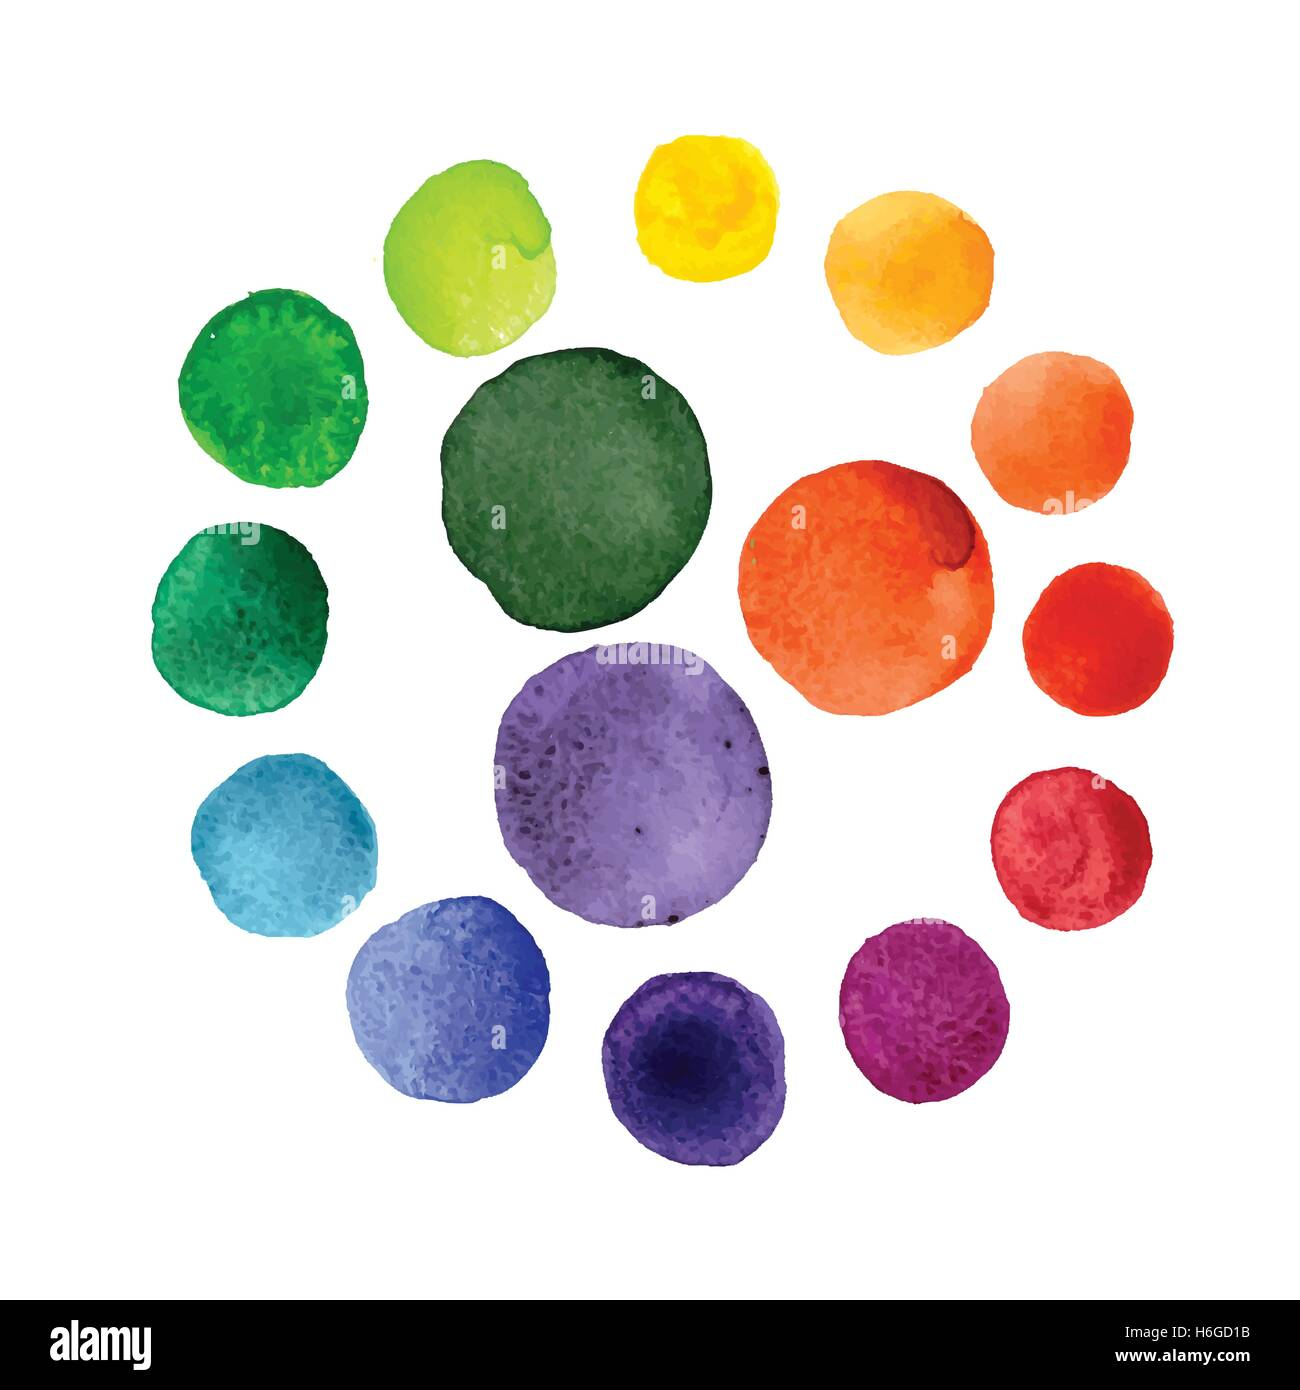 Handmade Watercolor Texture Colorful Paint Drops Color Wheel Isolated Rainbow Spectrum Spot